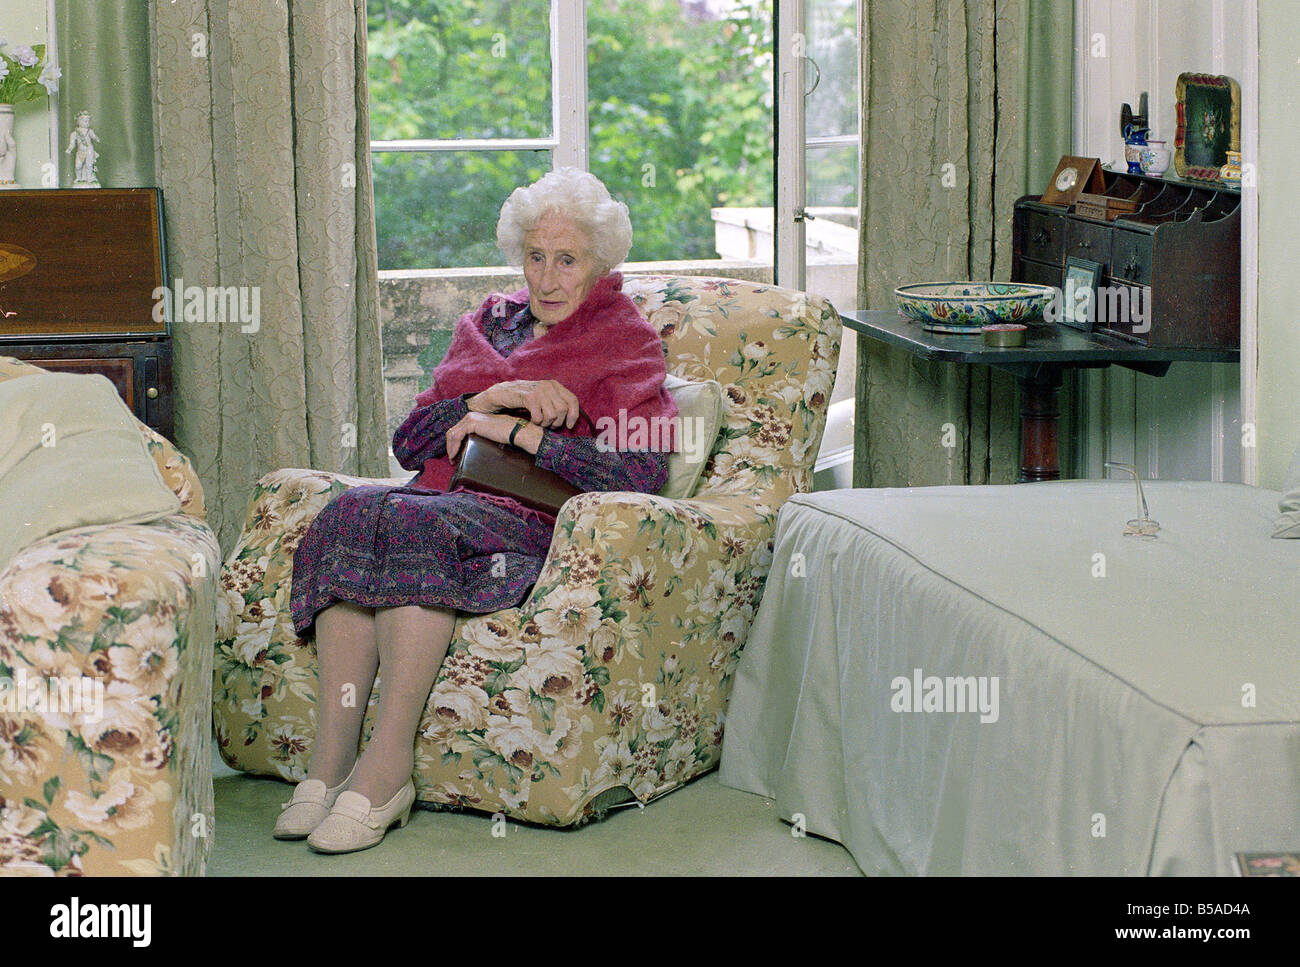 old lady chair antique corner frail holding her handbag people oap oaps